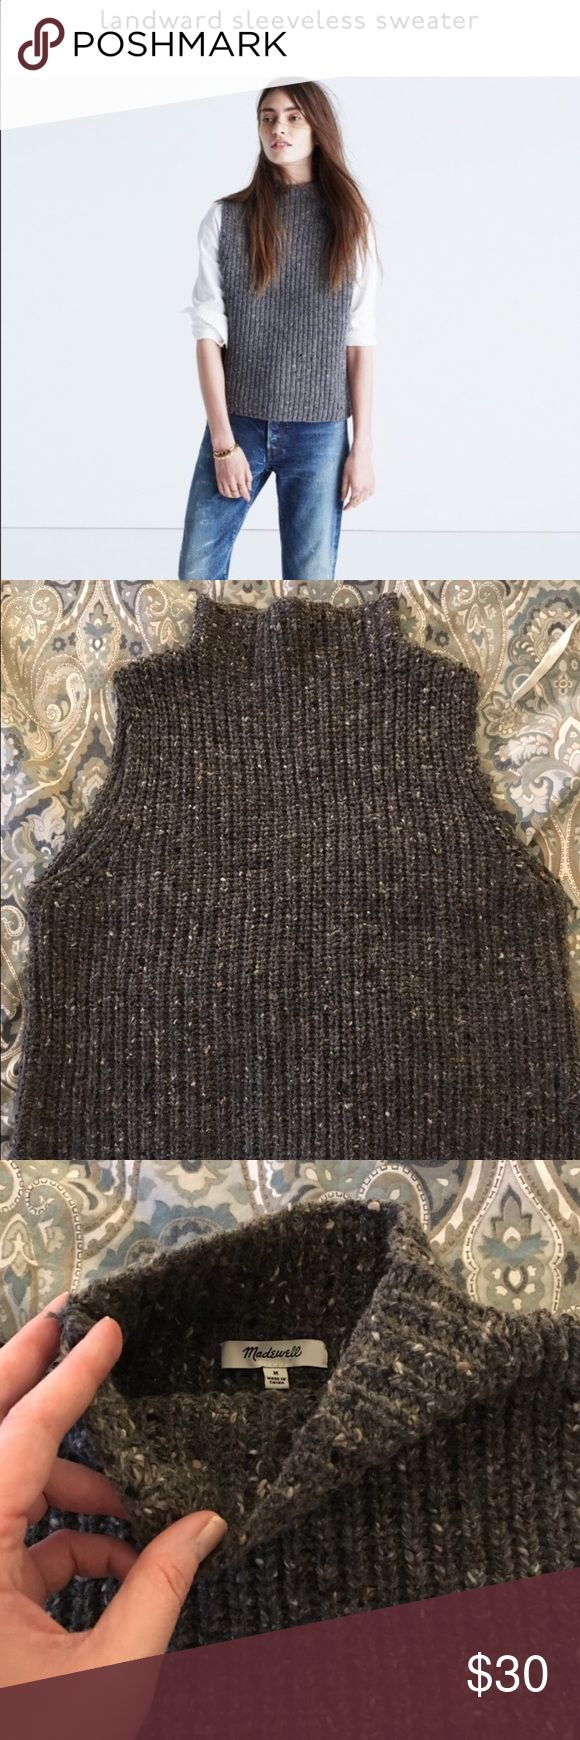 Madewell sleeveless sweater Madewell sleeveless sweater in dark grey. Excellent condition. Worn only once. Size M Madewell Sweaters